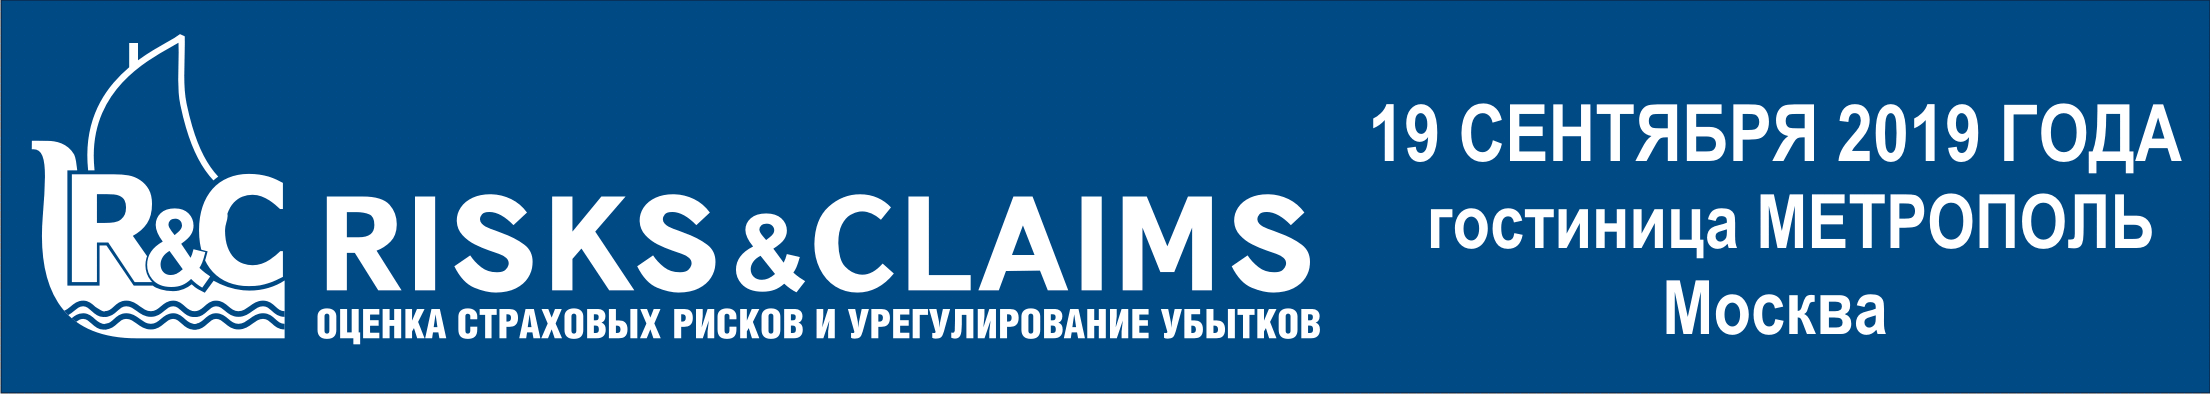 Risks&Claims-2019